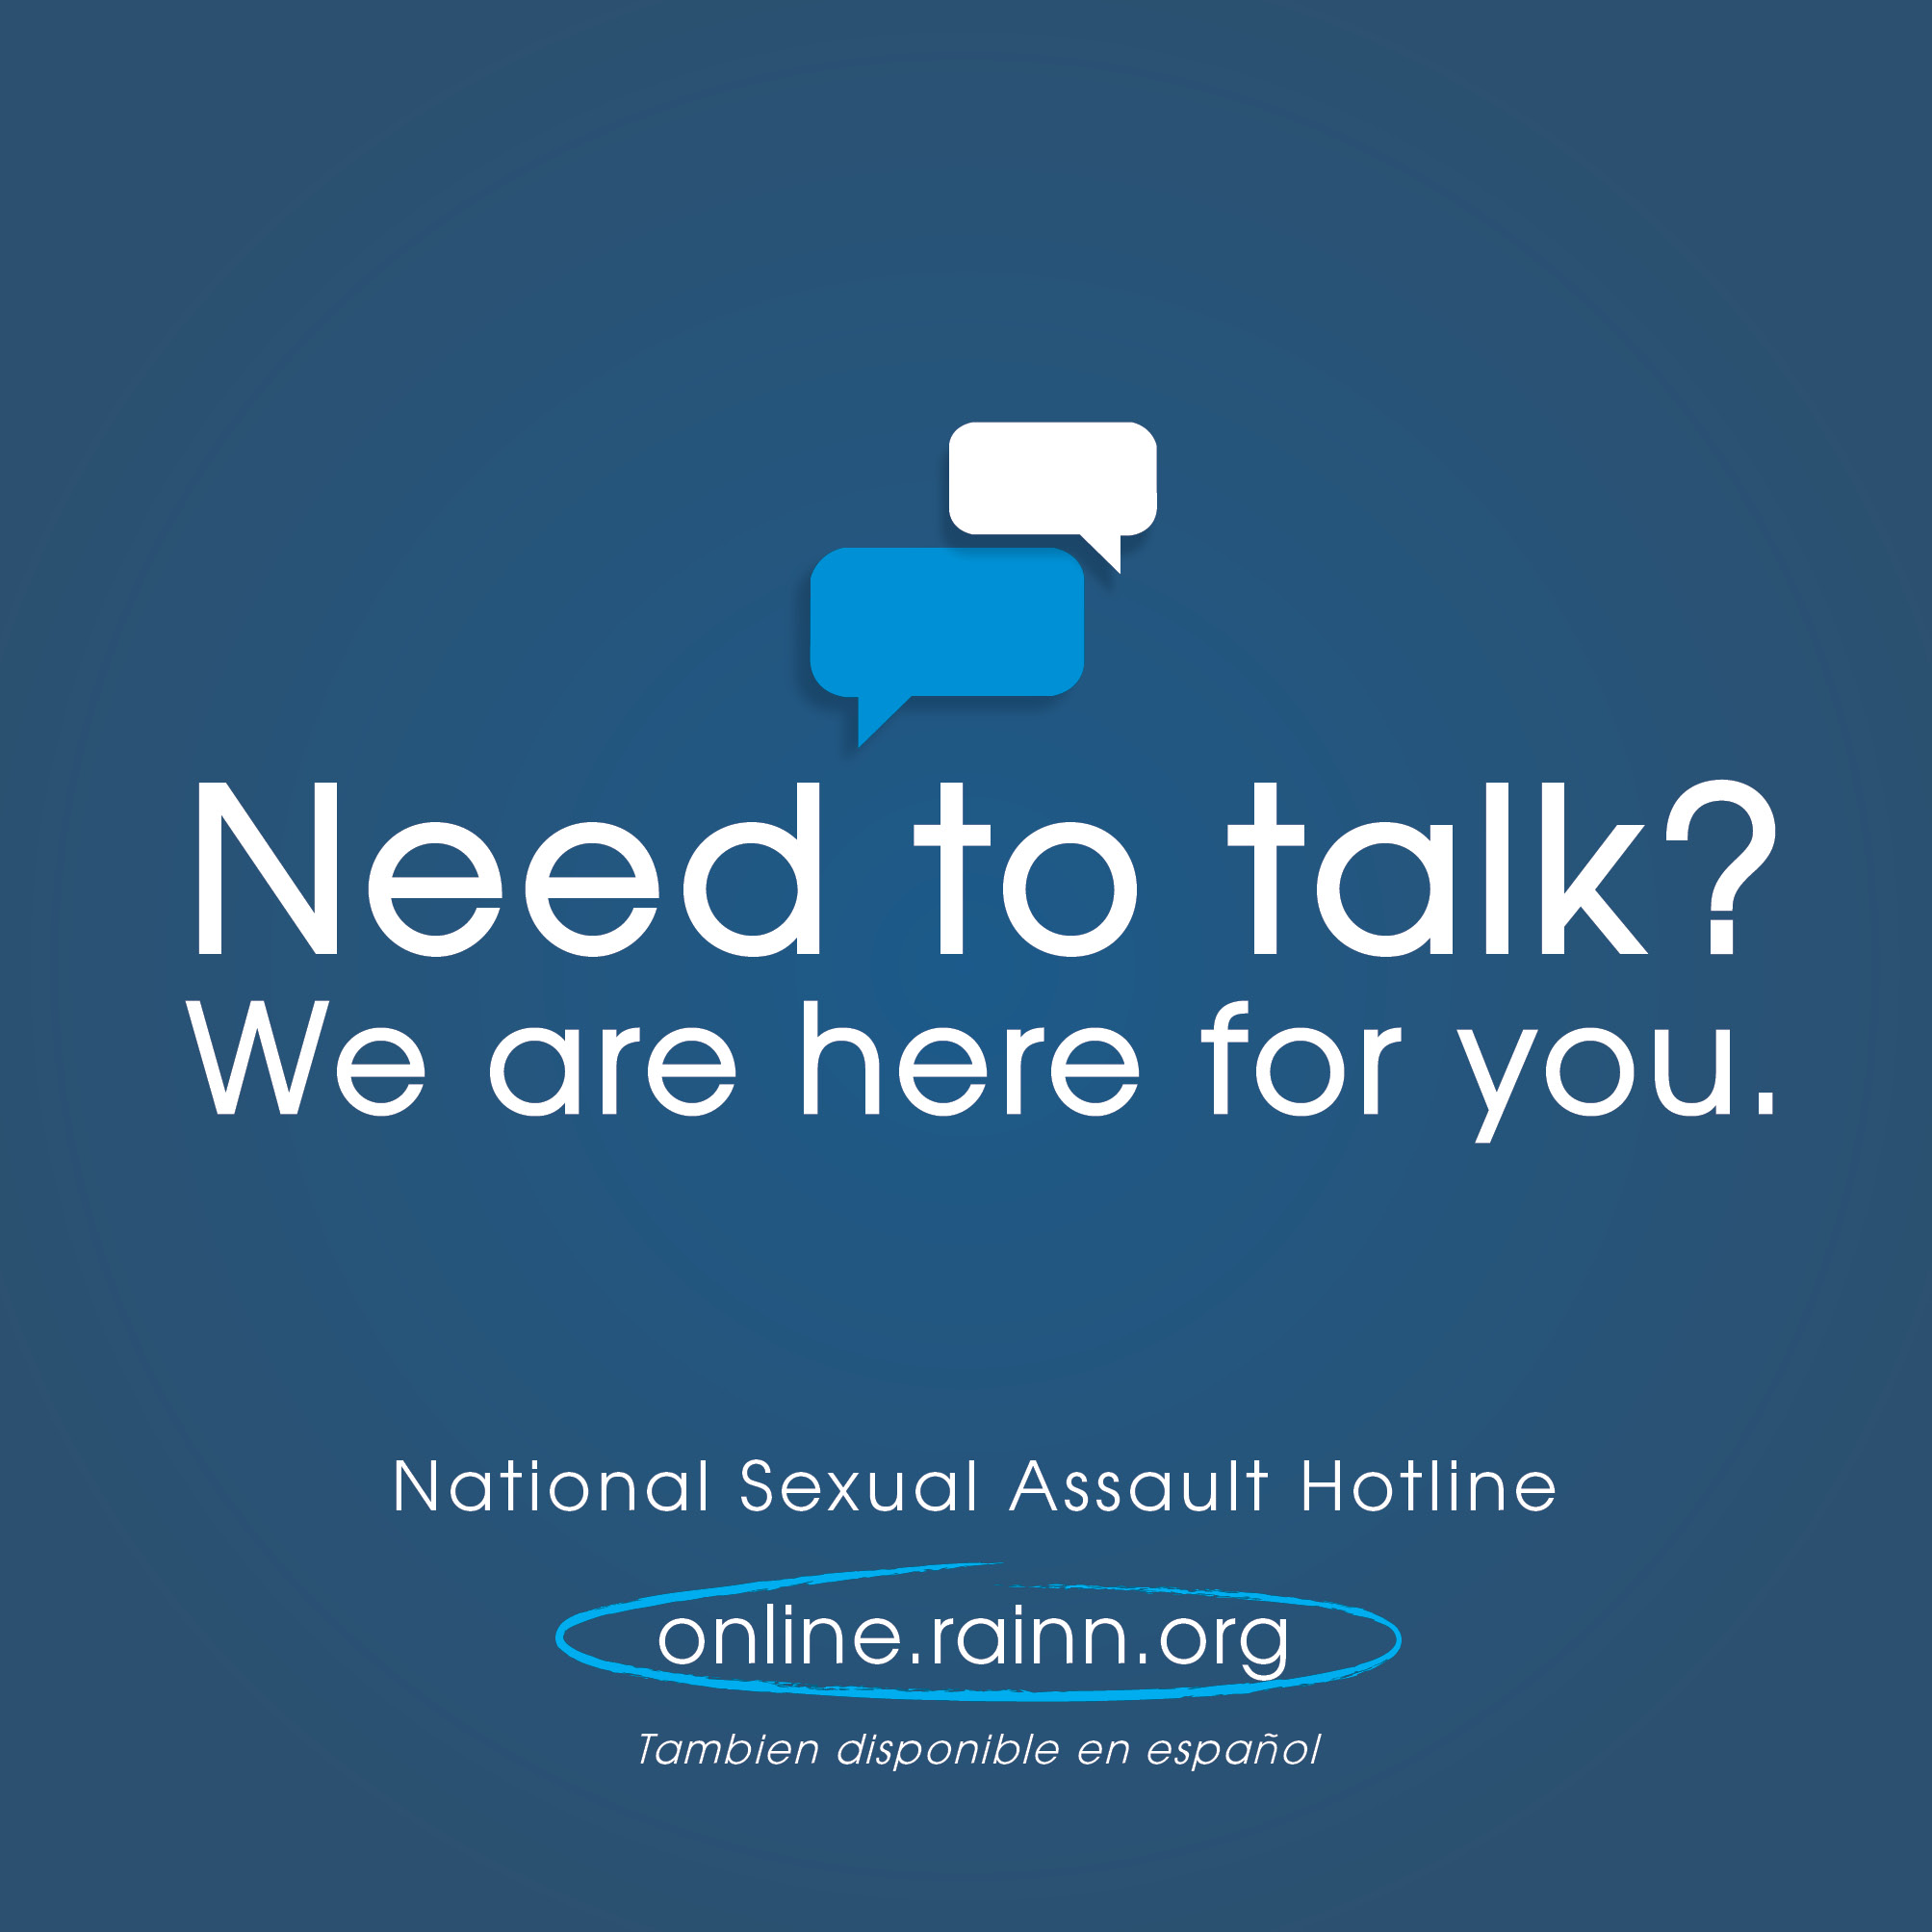 National Sexual Assault Hotline | RAINN